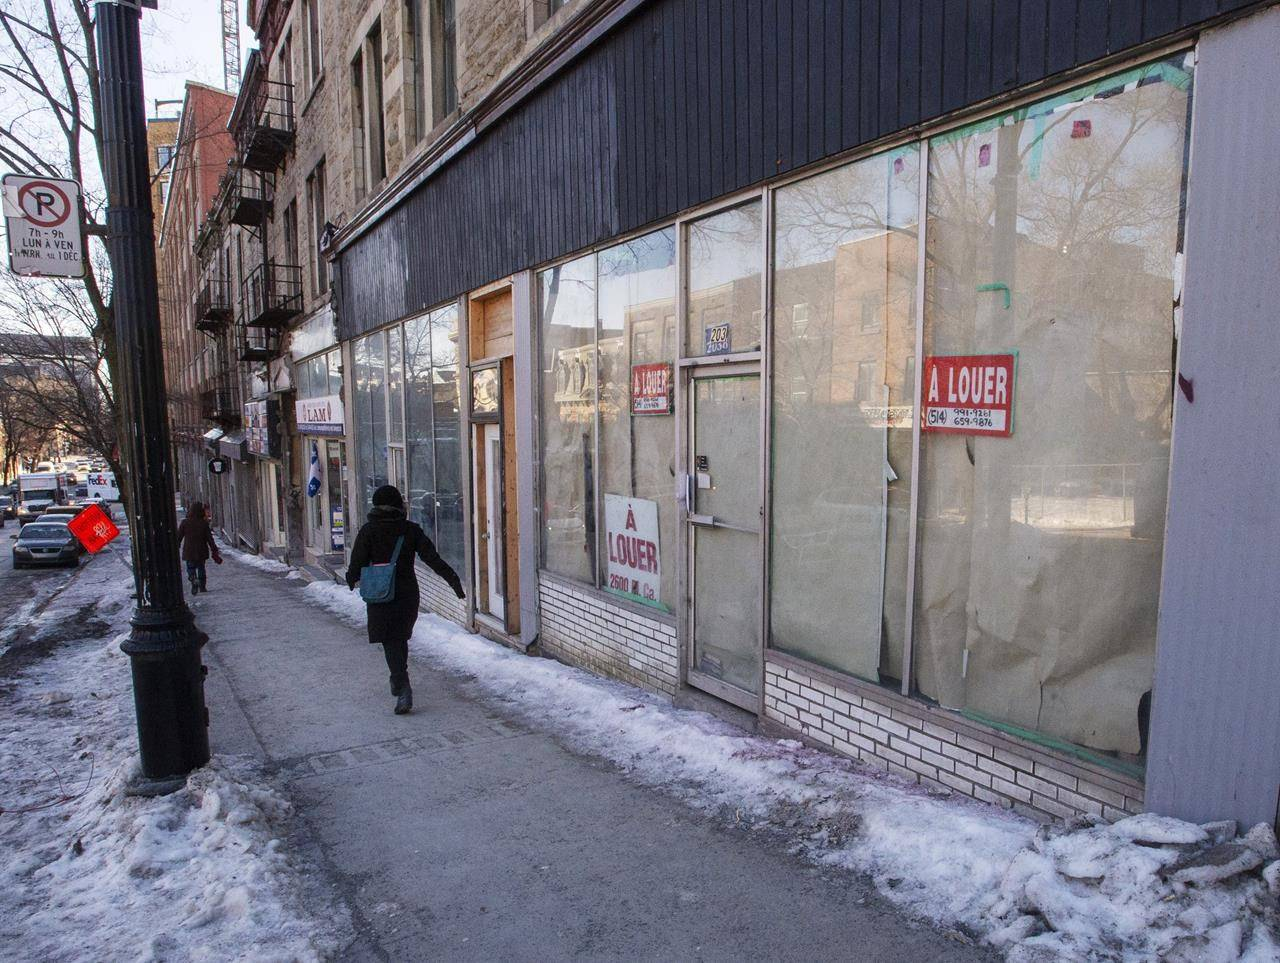 A pedestrian walks past an empty store front in Montreal, Wednesday, Jan. 29, 2020. THE CANADIAN PRESS/Ryan Remiorz